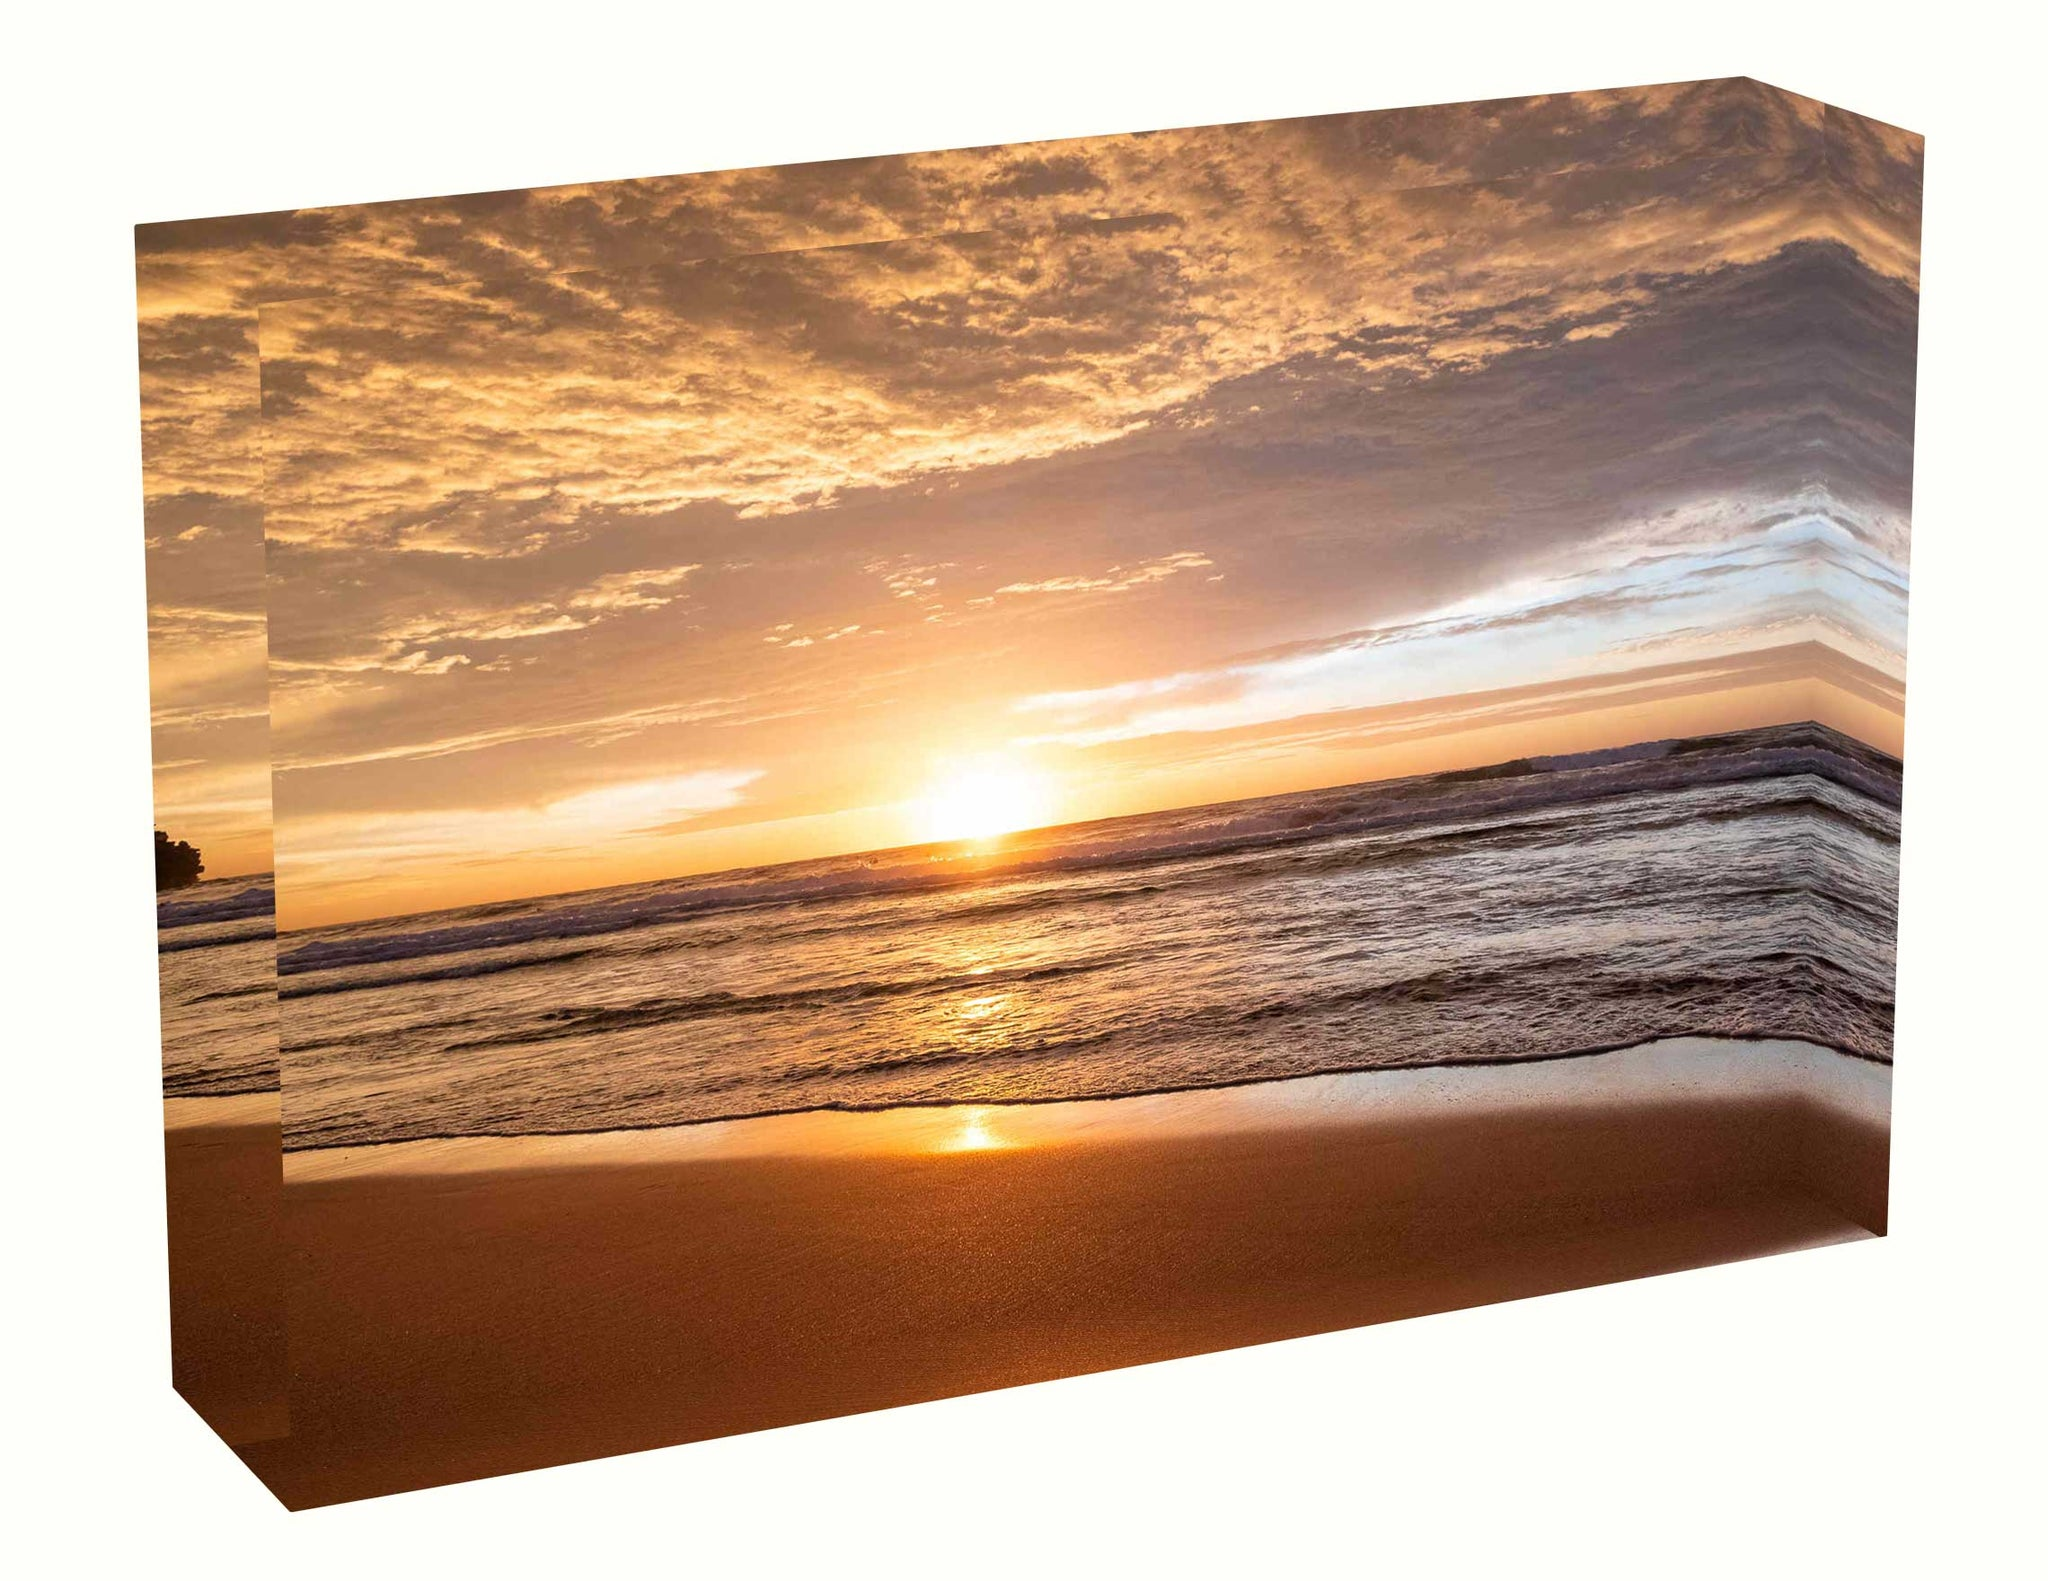 Acrylic block Sunrise photo from 30th April 2020 at Manly beach, Sydney